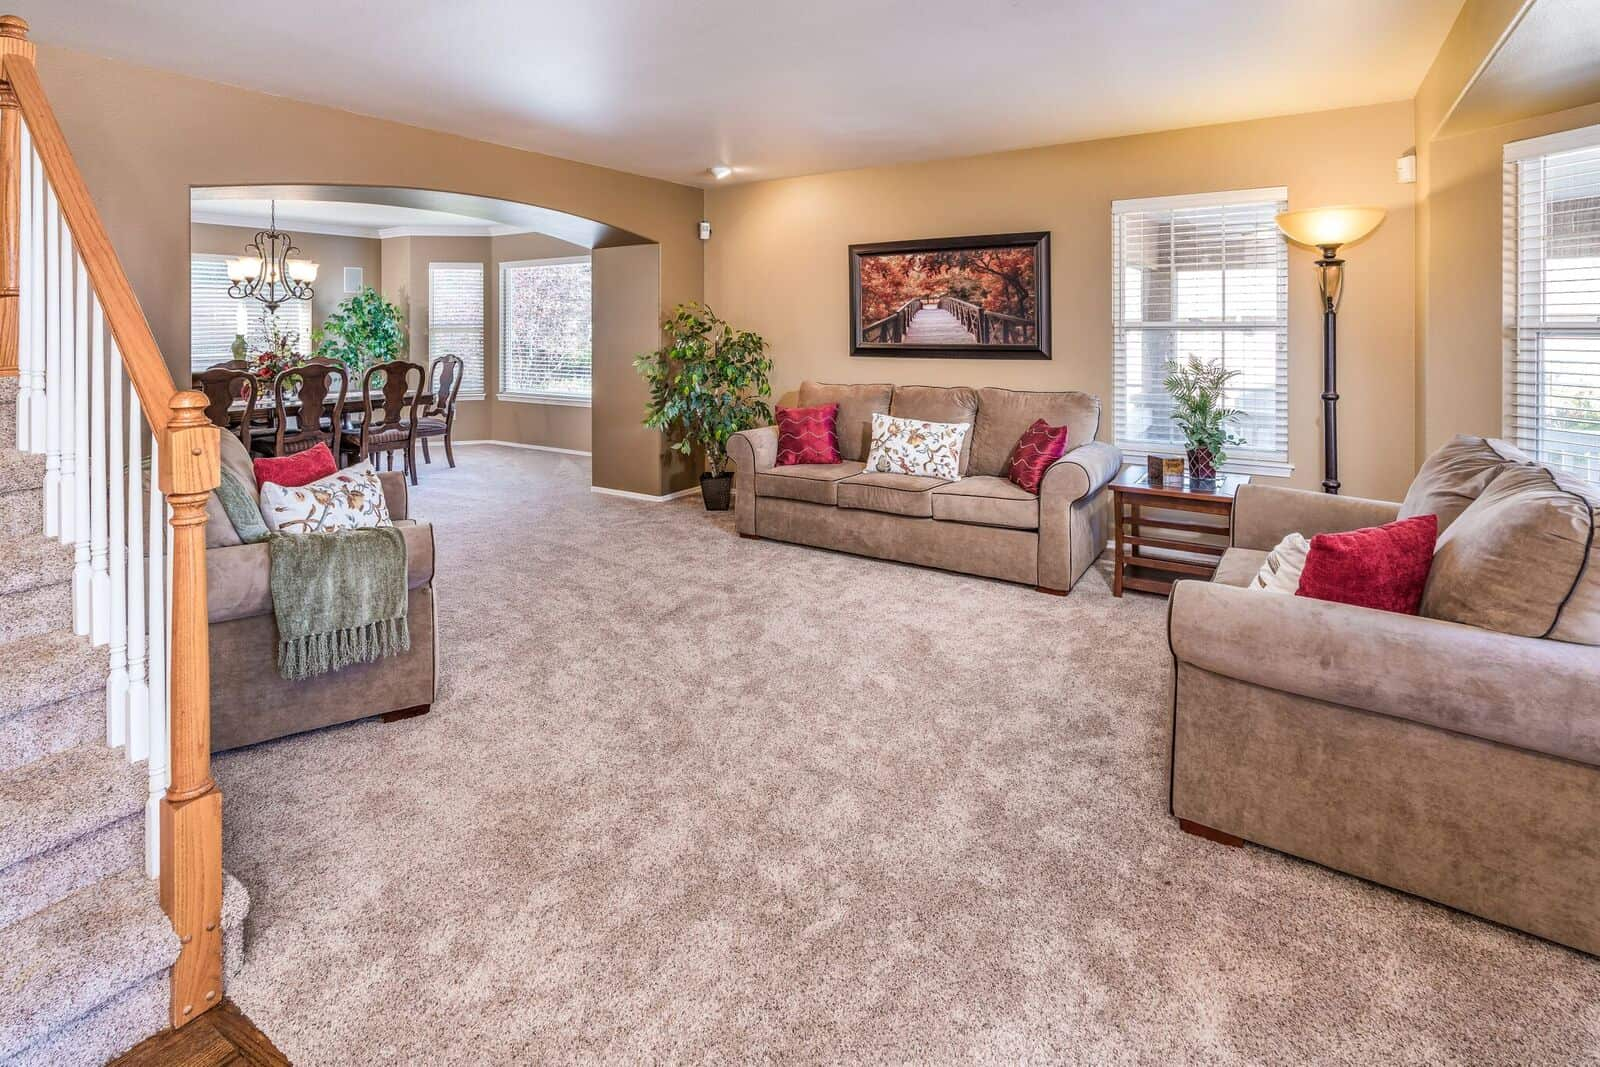 Living Room into Dining Room